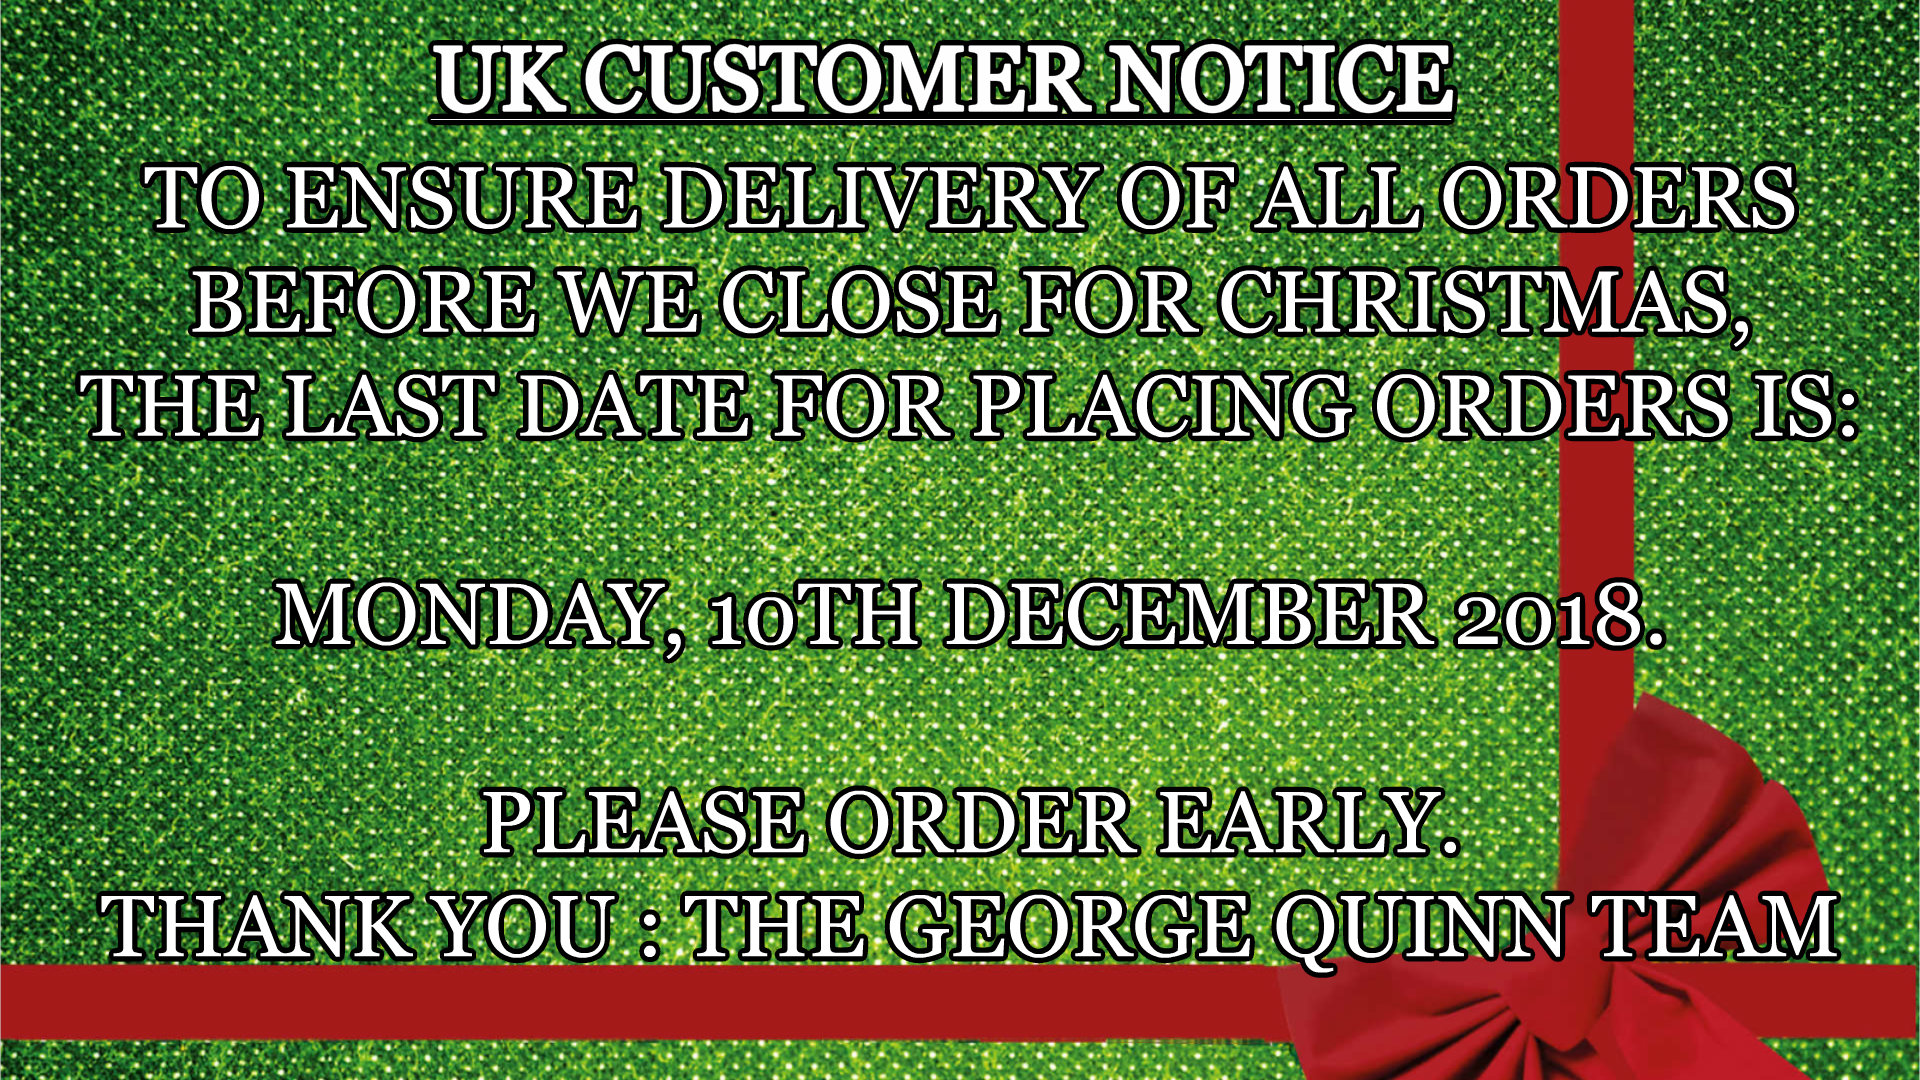 George Quinn Stair Parts - Christmas 2018 Customer Notice regarding last date for placing orders